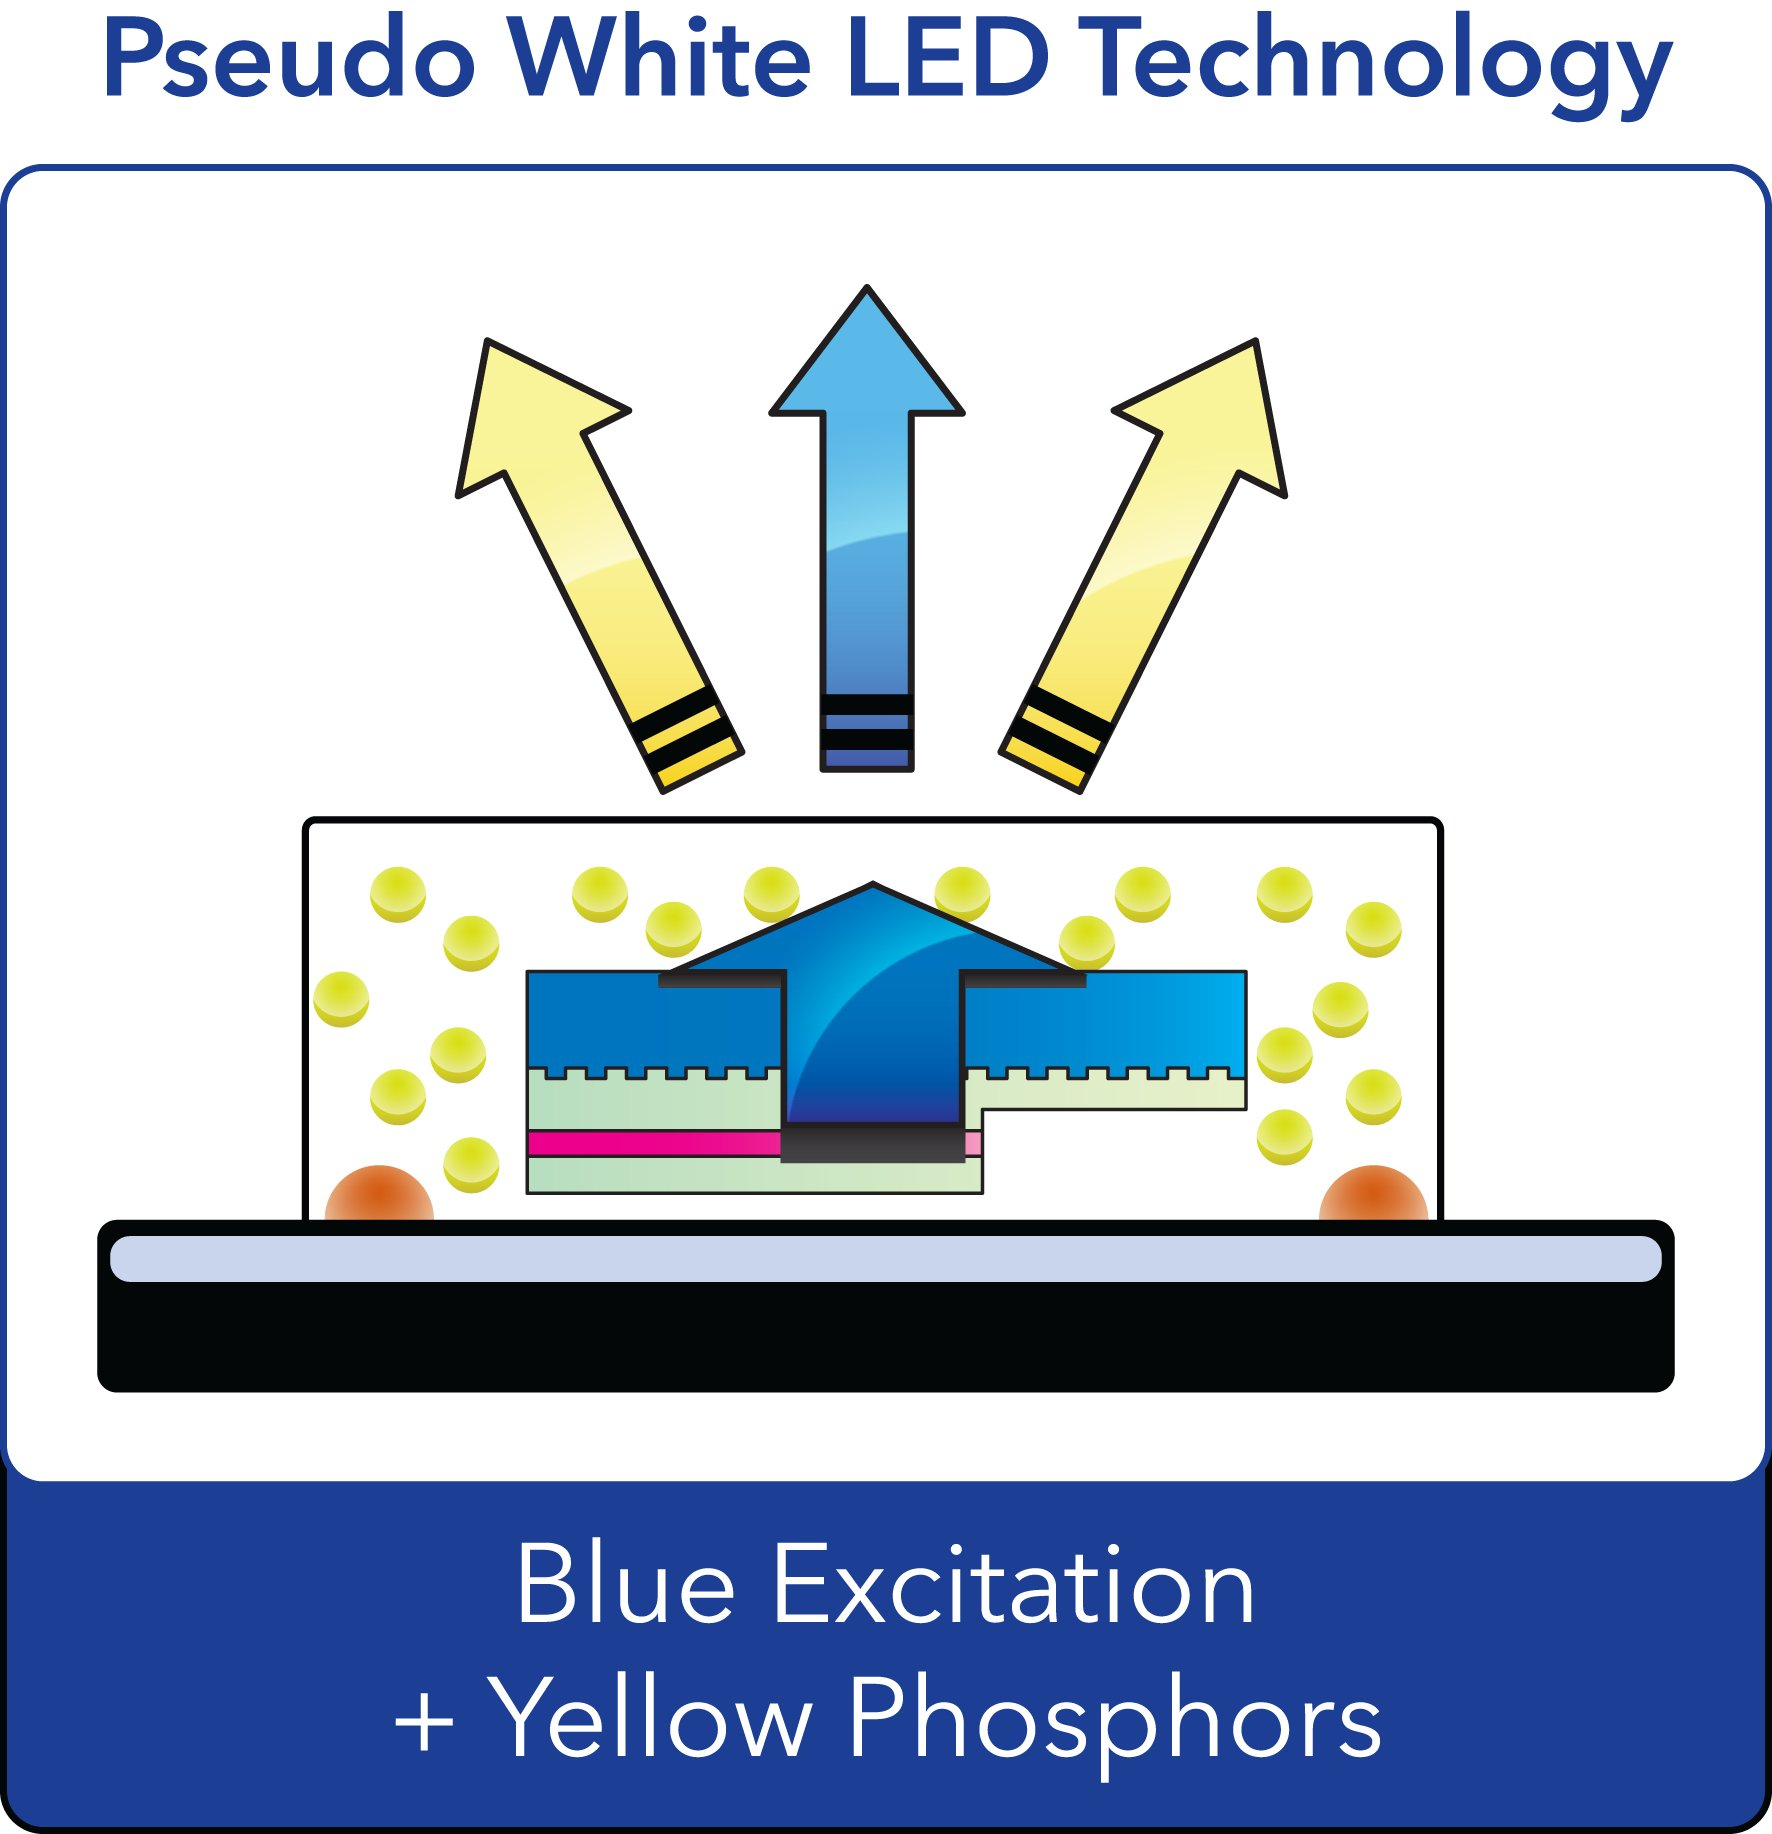 Violet Chips Bring Sunlight Indoors With Led Technology Eenews Design A Laserdiode Driver For Range Finder Applications Ee Times Wavelength Of Between 450 And 500nm